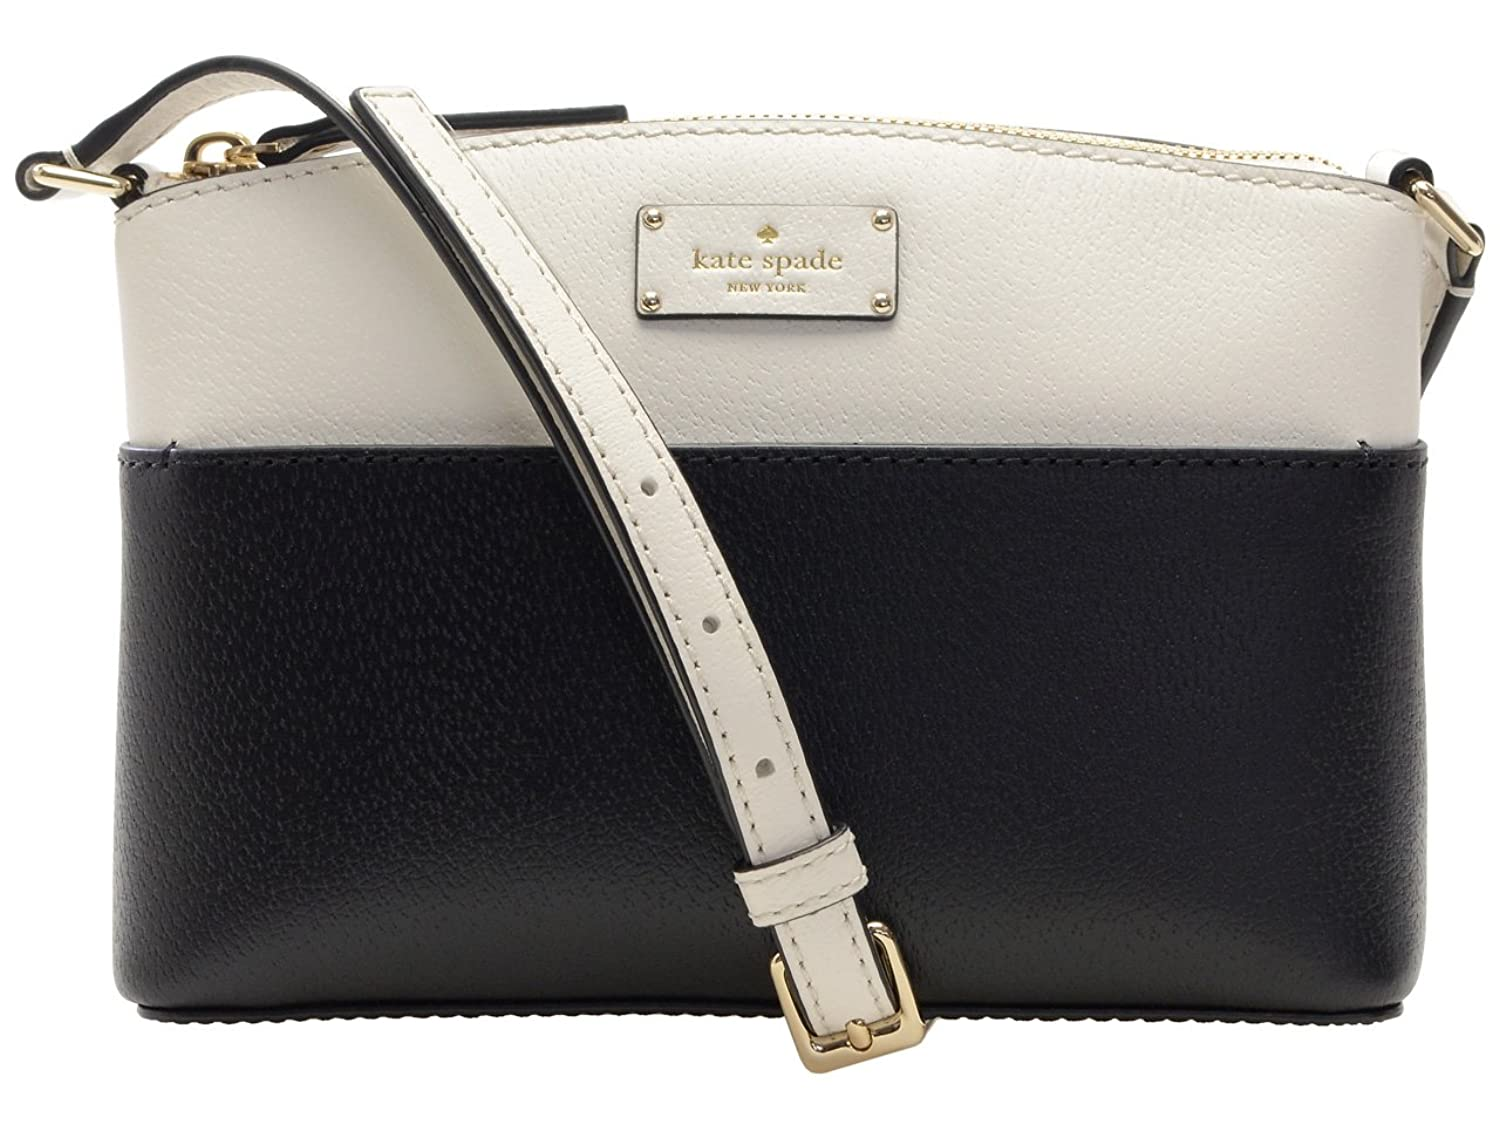 603e8efd7450 NWT Kate Spade New York Grove Street Millie Leather Handbag WKRU4194 ...